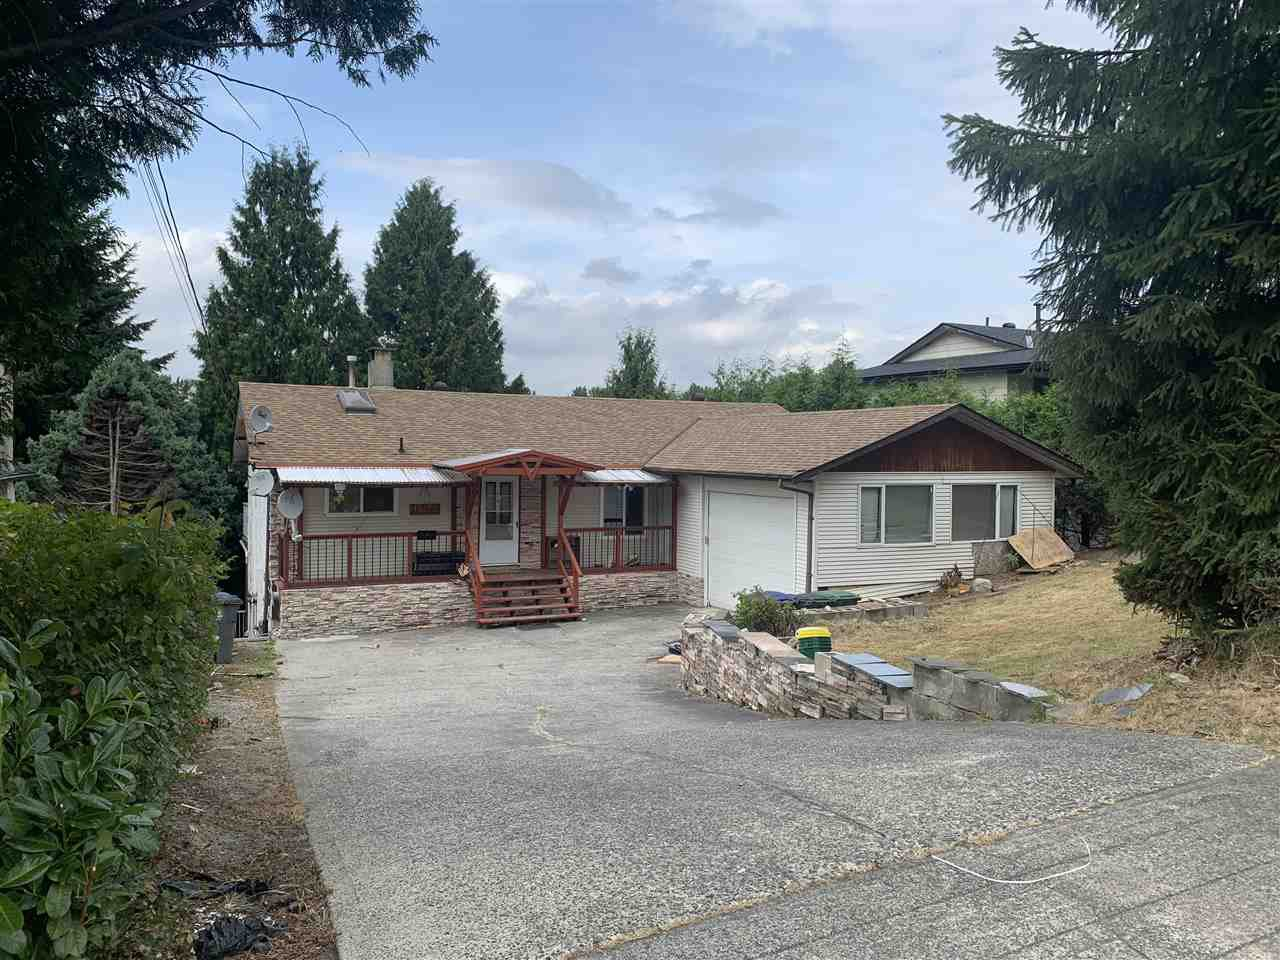 """Main Photo: 13475 113 Avenue in Surrey: Bolivar Heights House for sale in """"BOLIVER HEIGHTS"""" (North Surrey)  : MLS®# R2406602"""